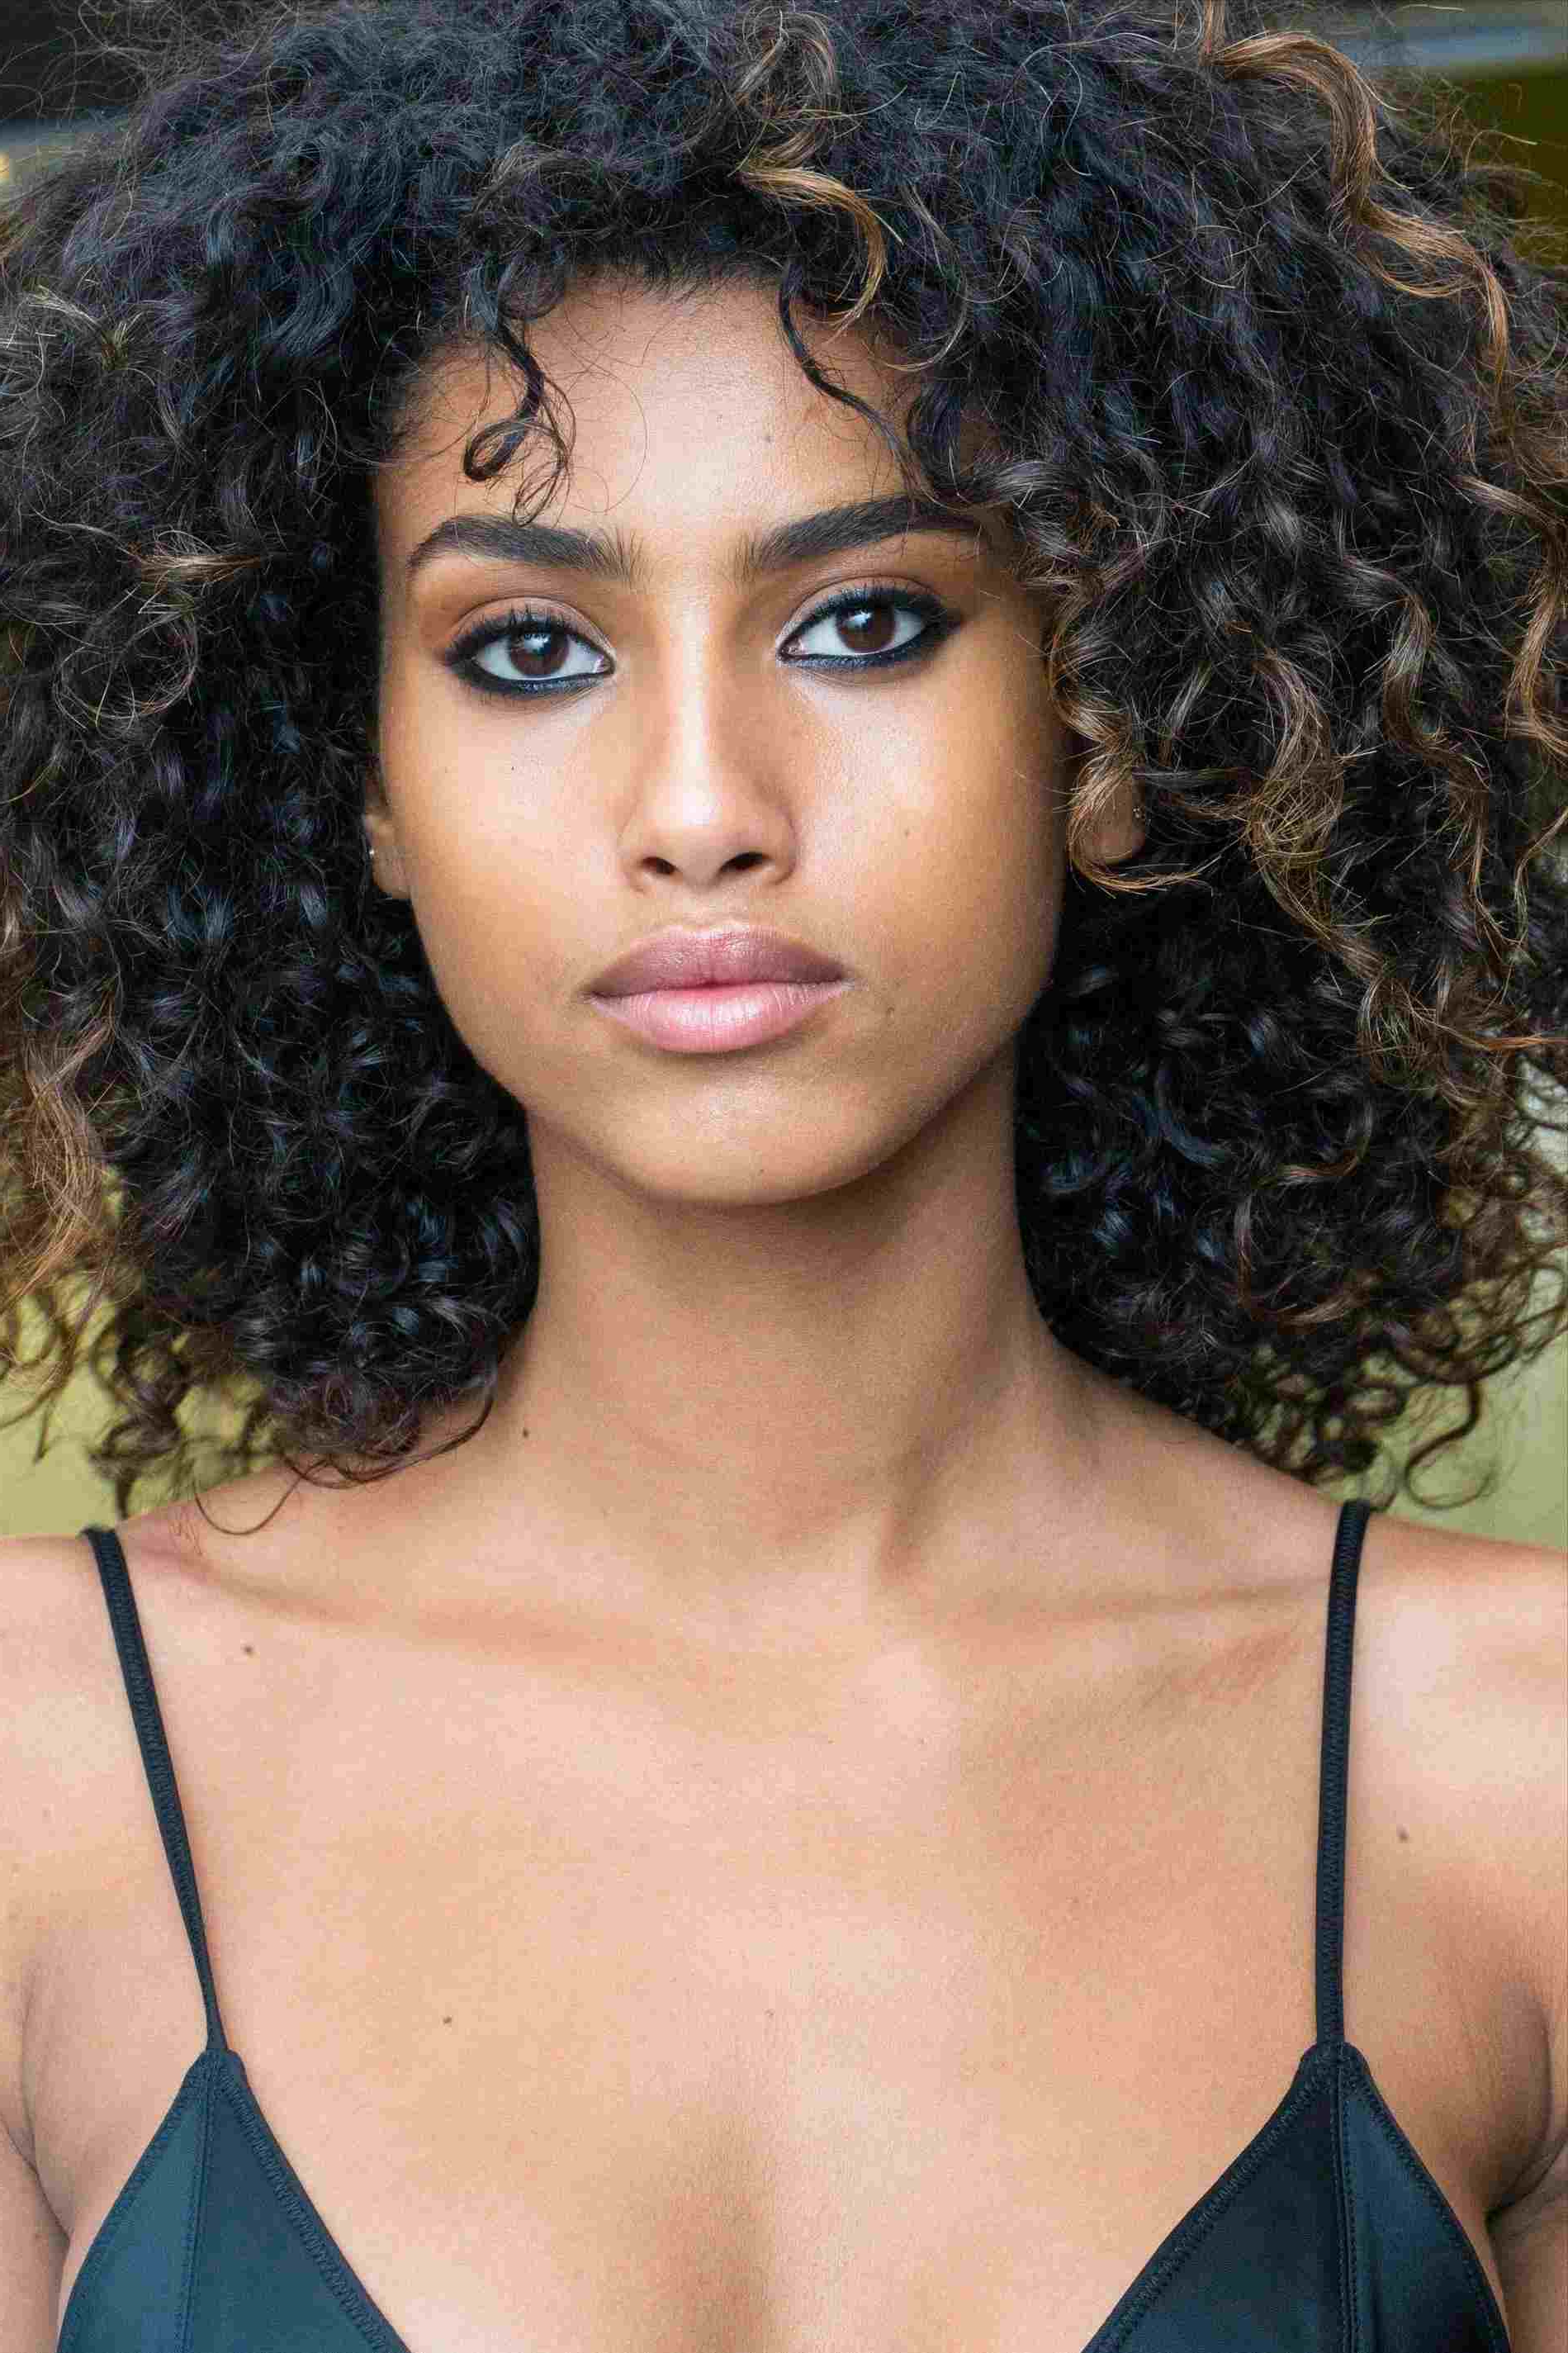 Natural Curly Hair Round Face Best Short Hairstyles For Round for Natural Short Hairstyles For Round Faces